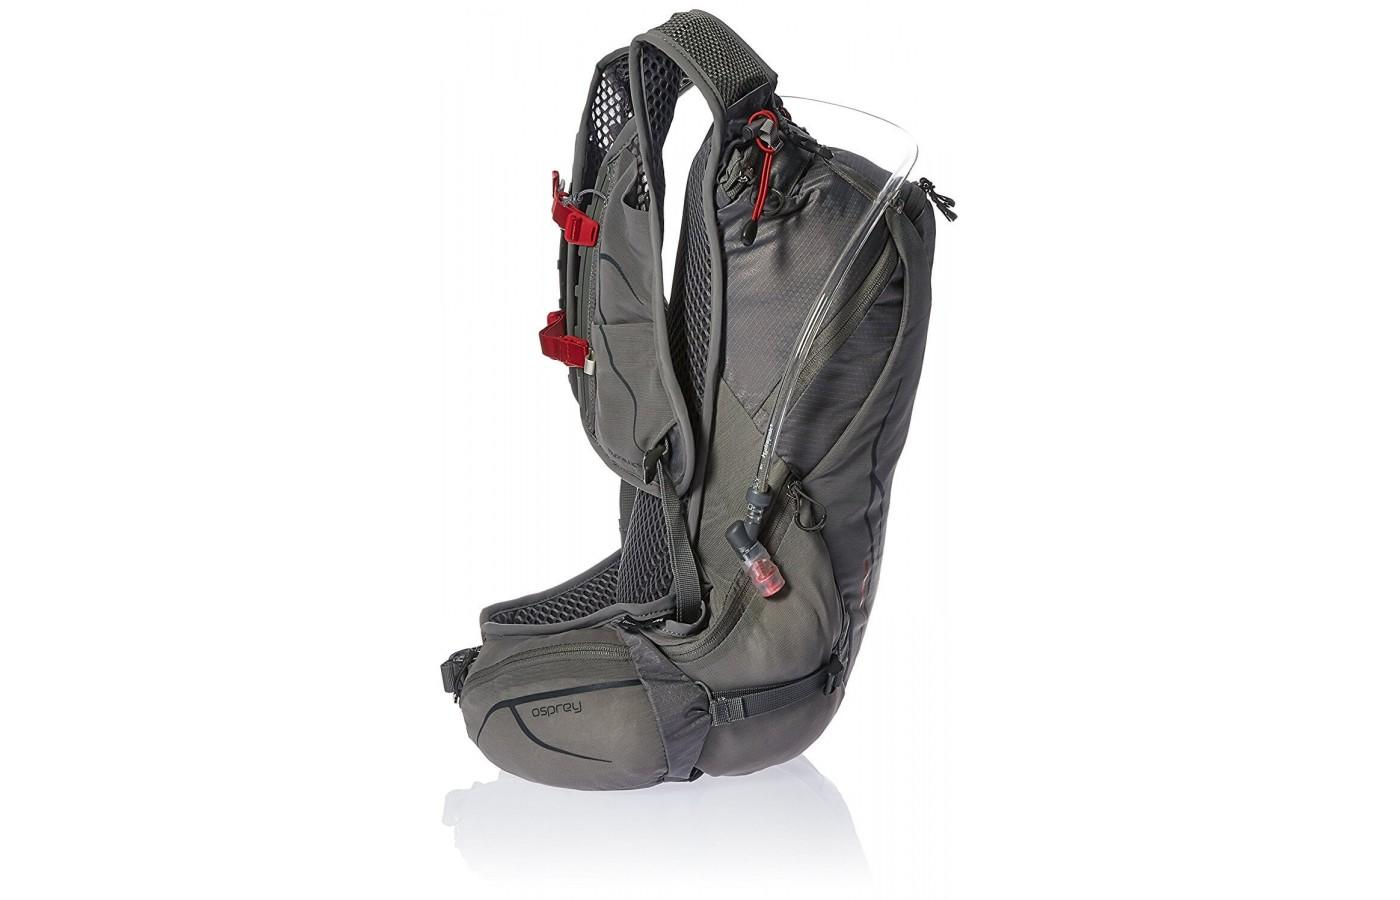 The Osprey Duro 15 is a vest-style pack with easy to reach front pockets